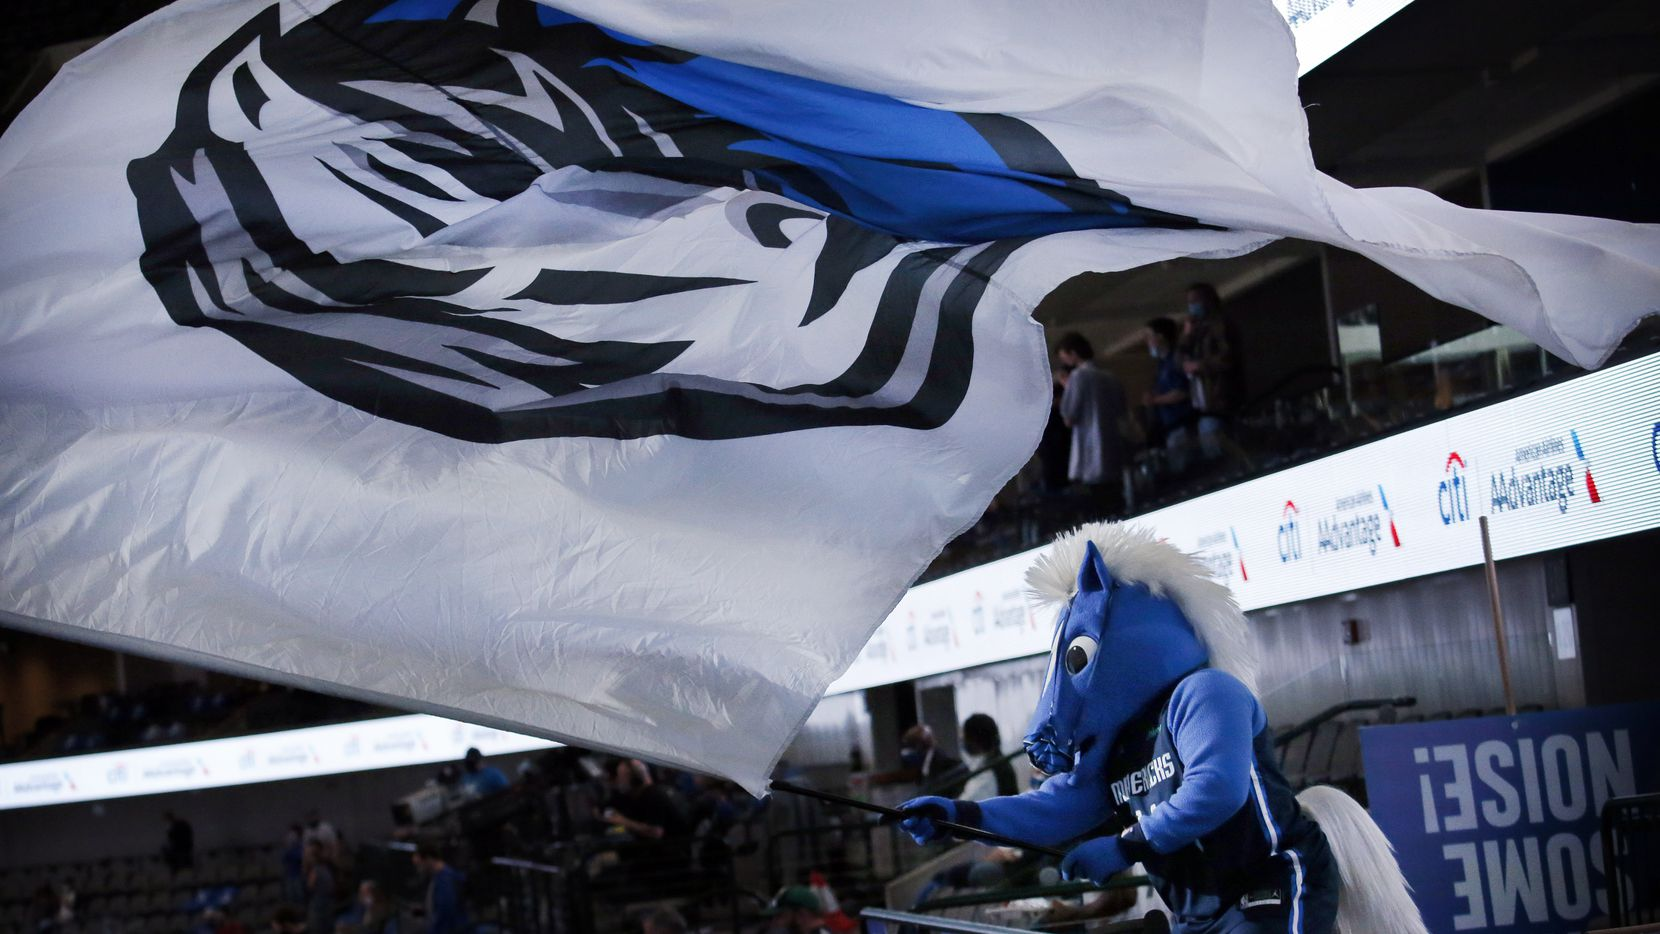 Dallas Mavericks mascot Champ waves the team flag from the main concourse as the players are introduced before the Boston Celtics game at the American Airlines Center in Dallas, Tuesday, February 23, 2021.